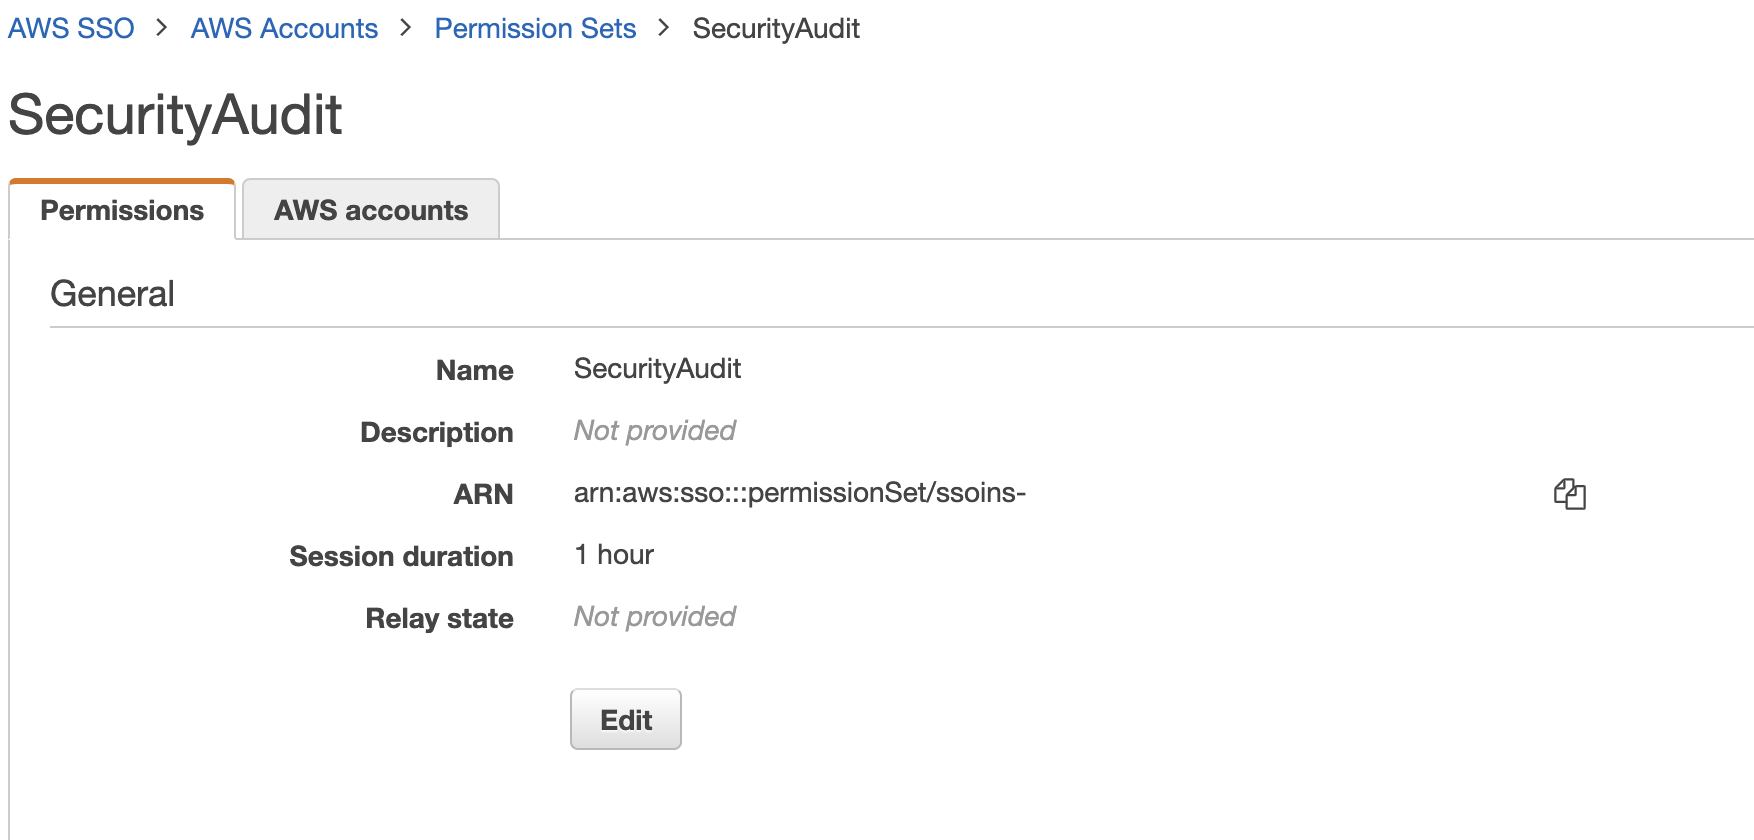 Figure 3: Permission set ARN